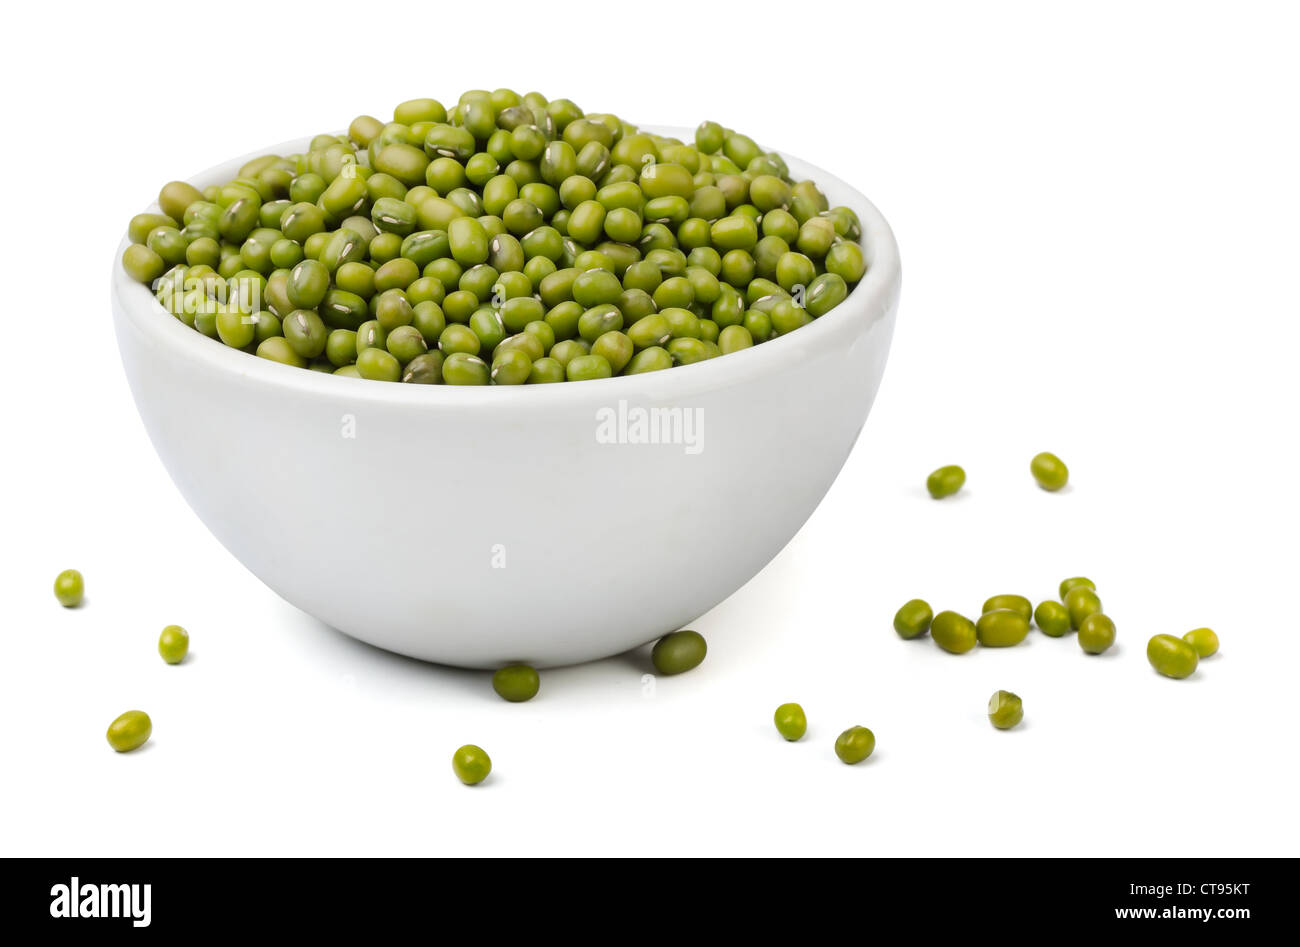 Green mung beans in white bowl isolated on white - Stock Image